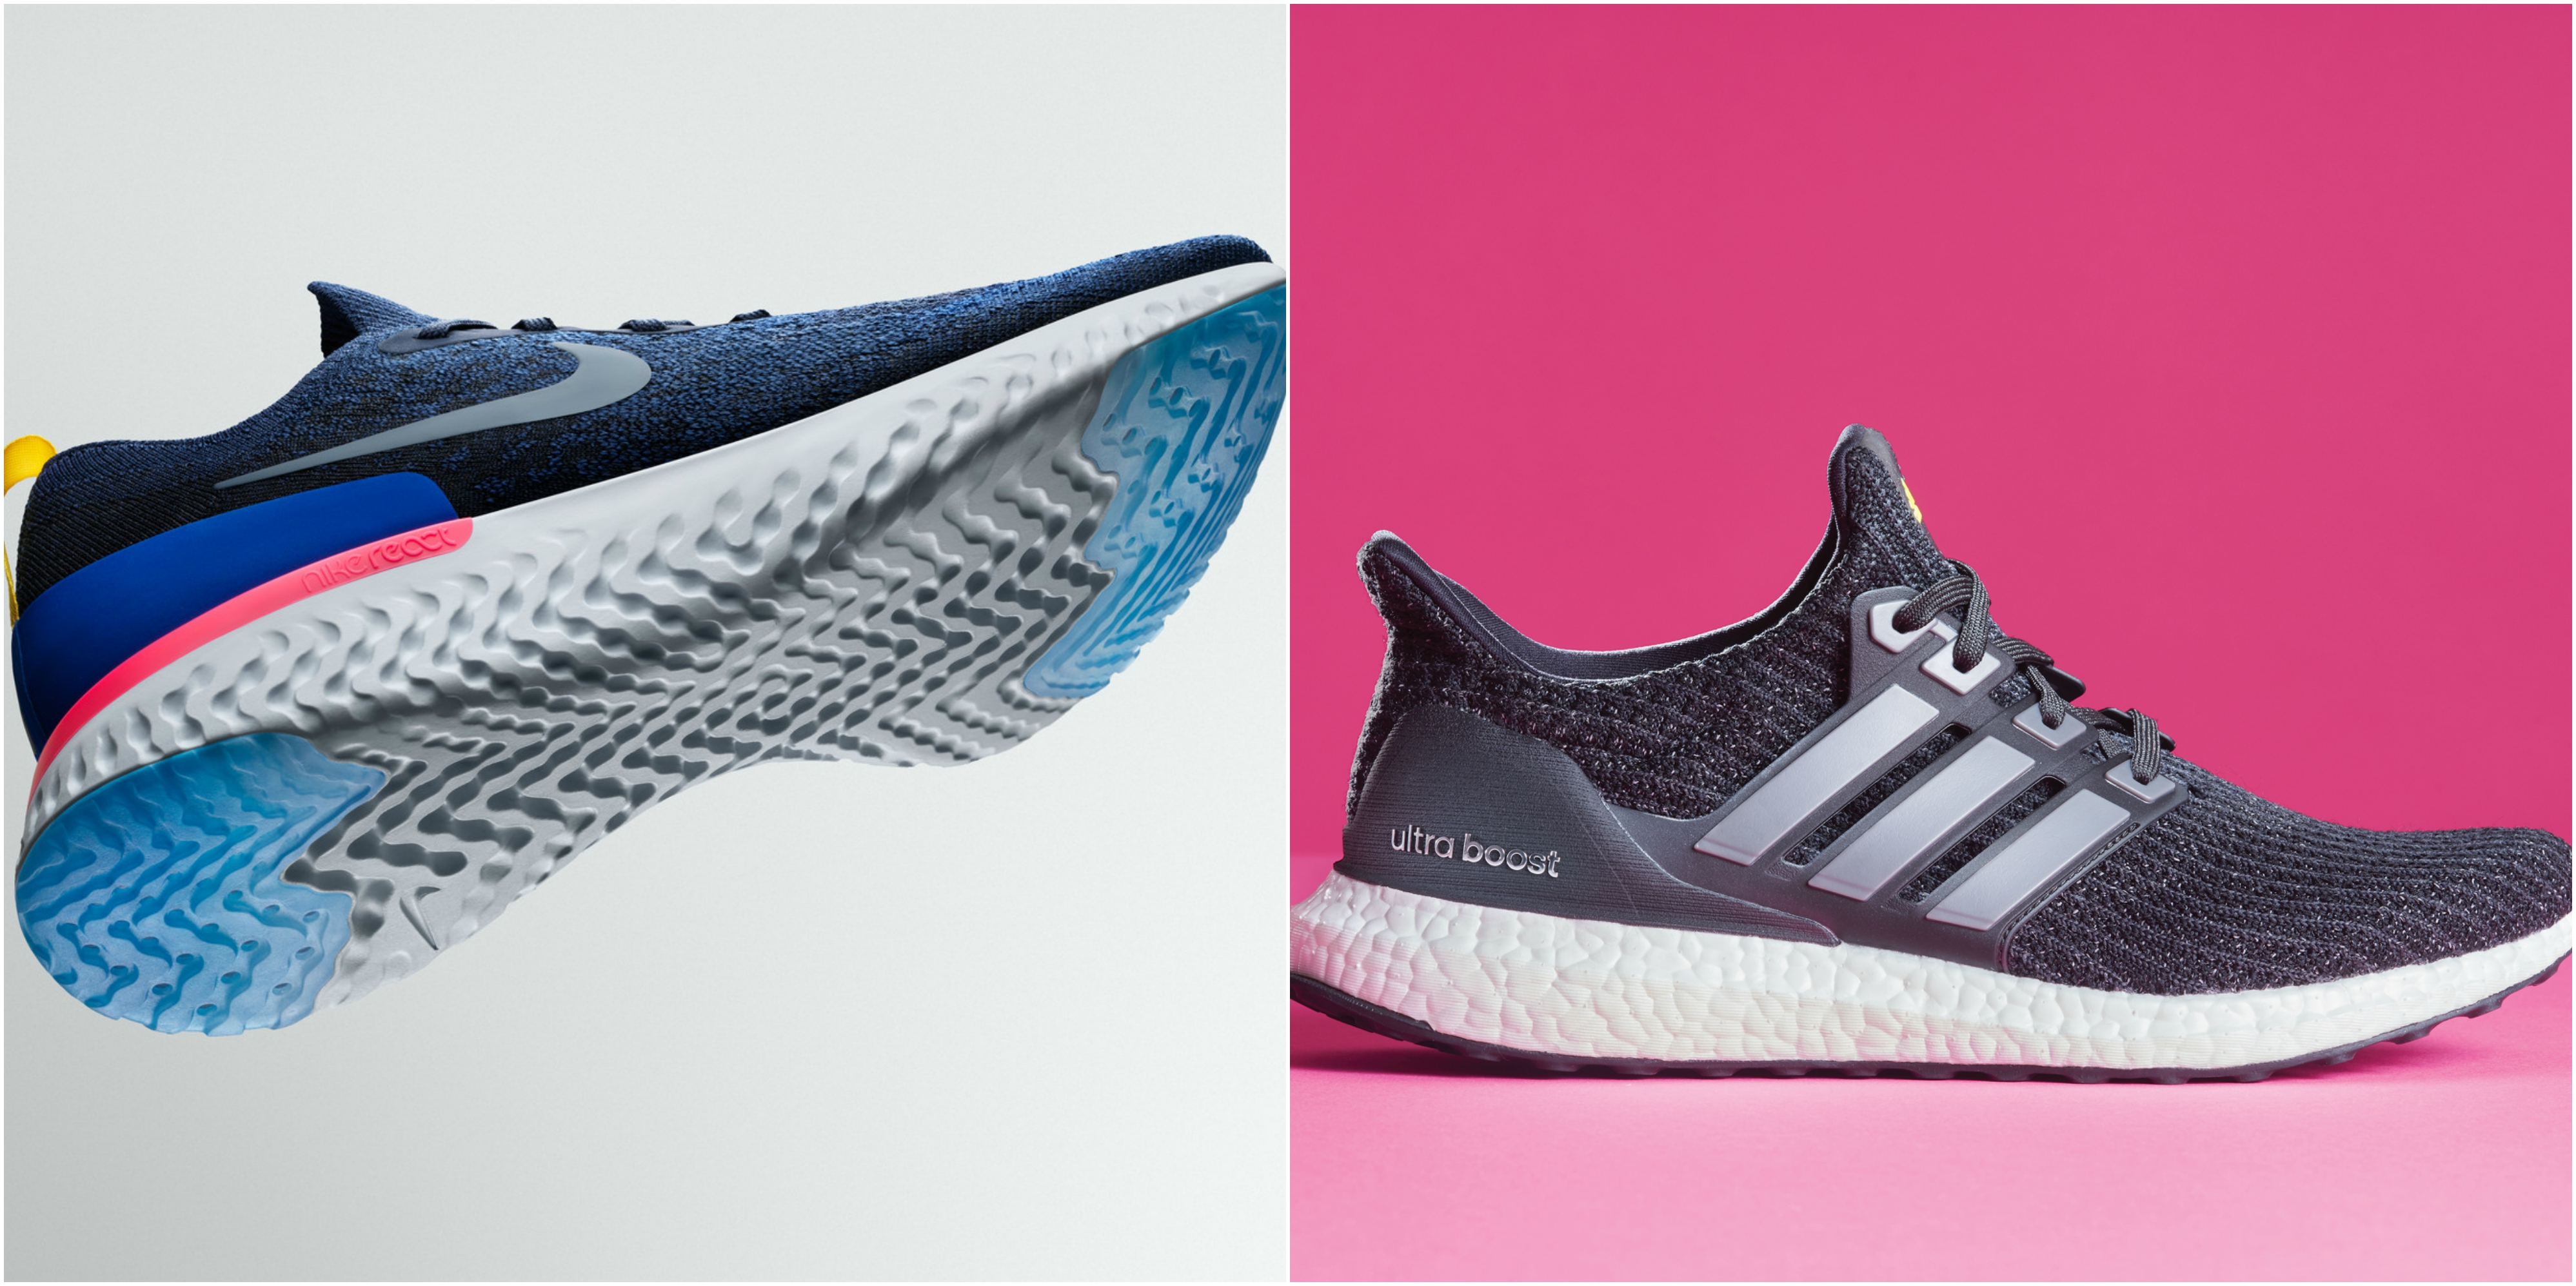 Nike Epic React v. Adidas Ultraboost: which is better